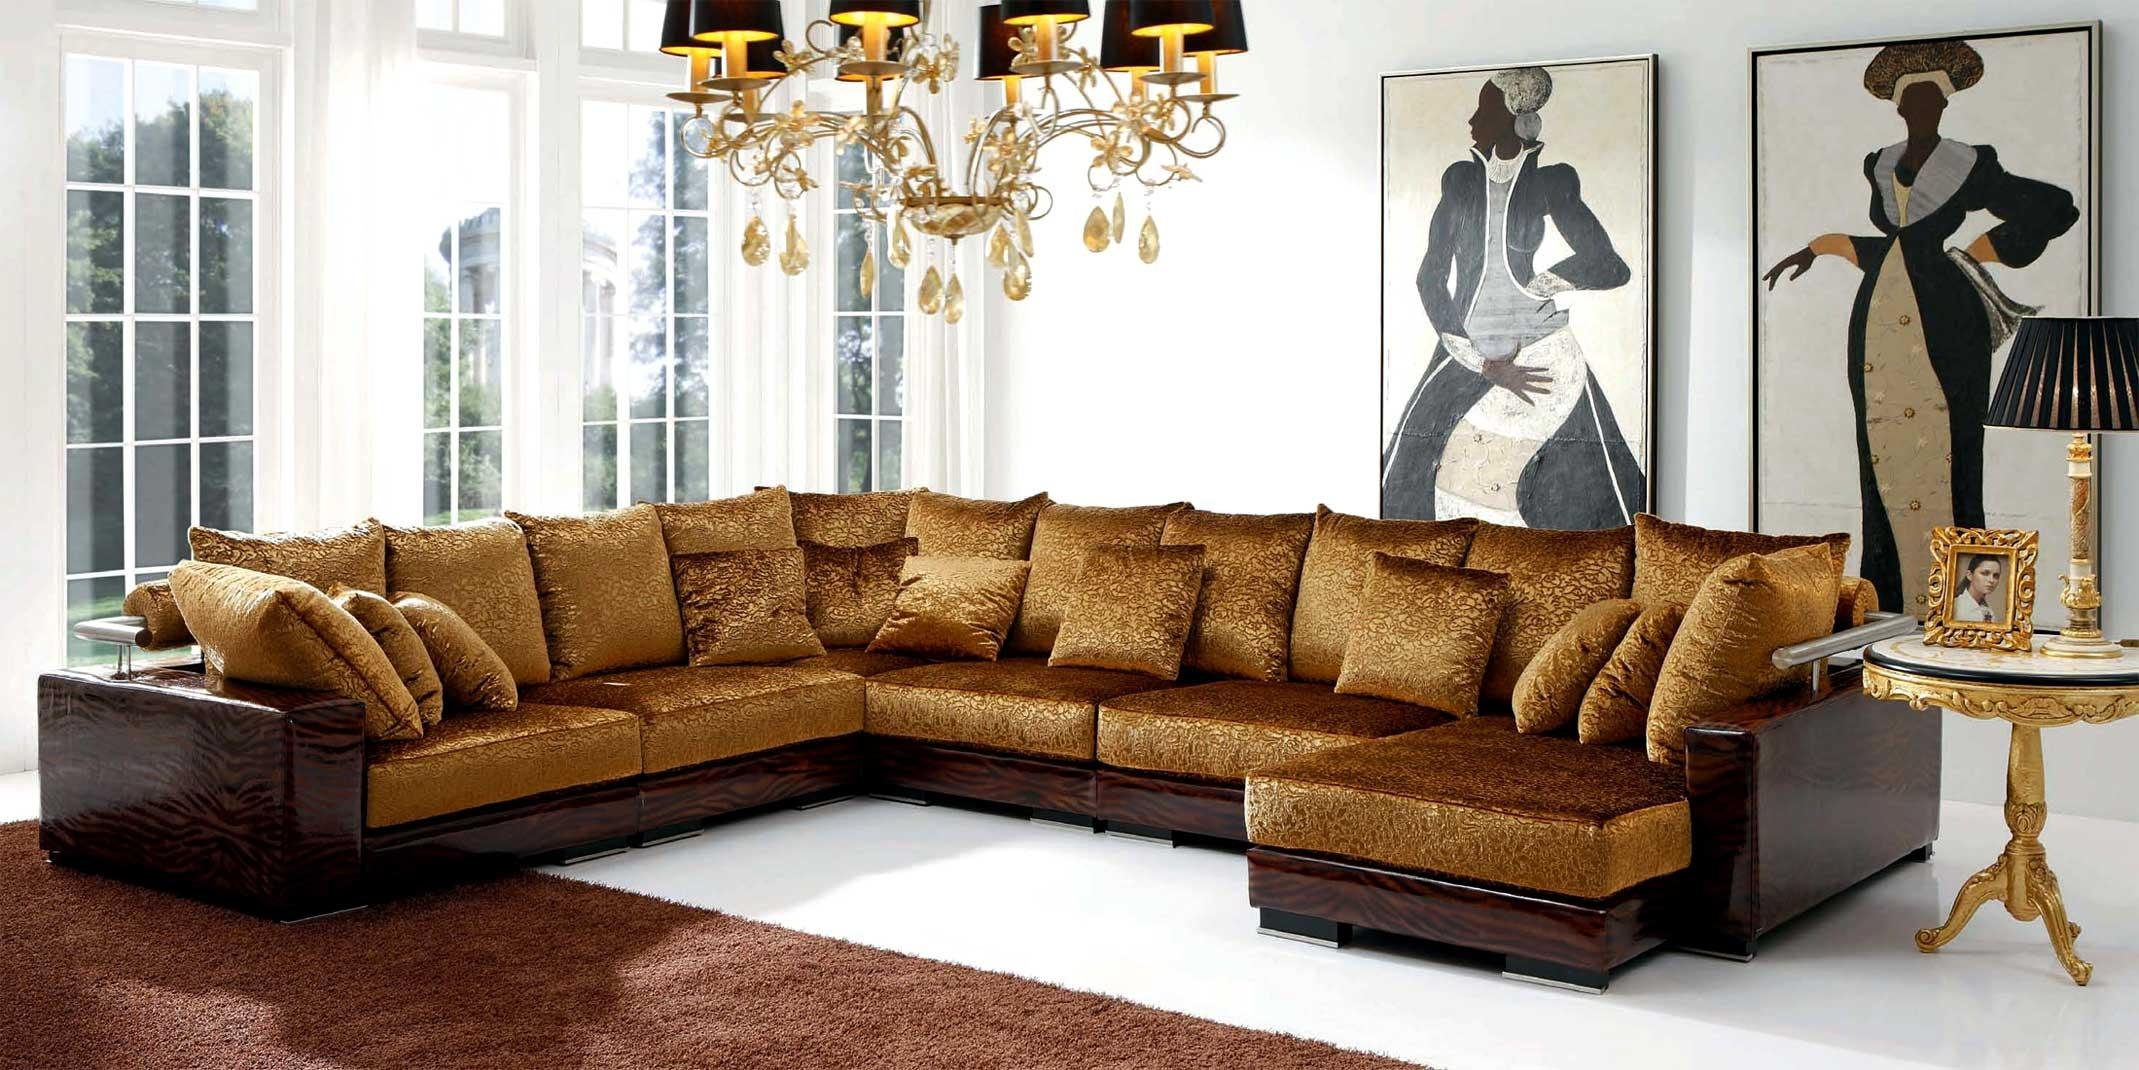 gold sectional sofa three seat length 15 collection of ideas